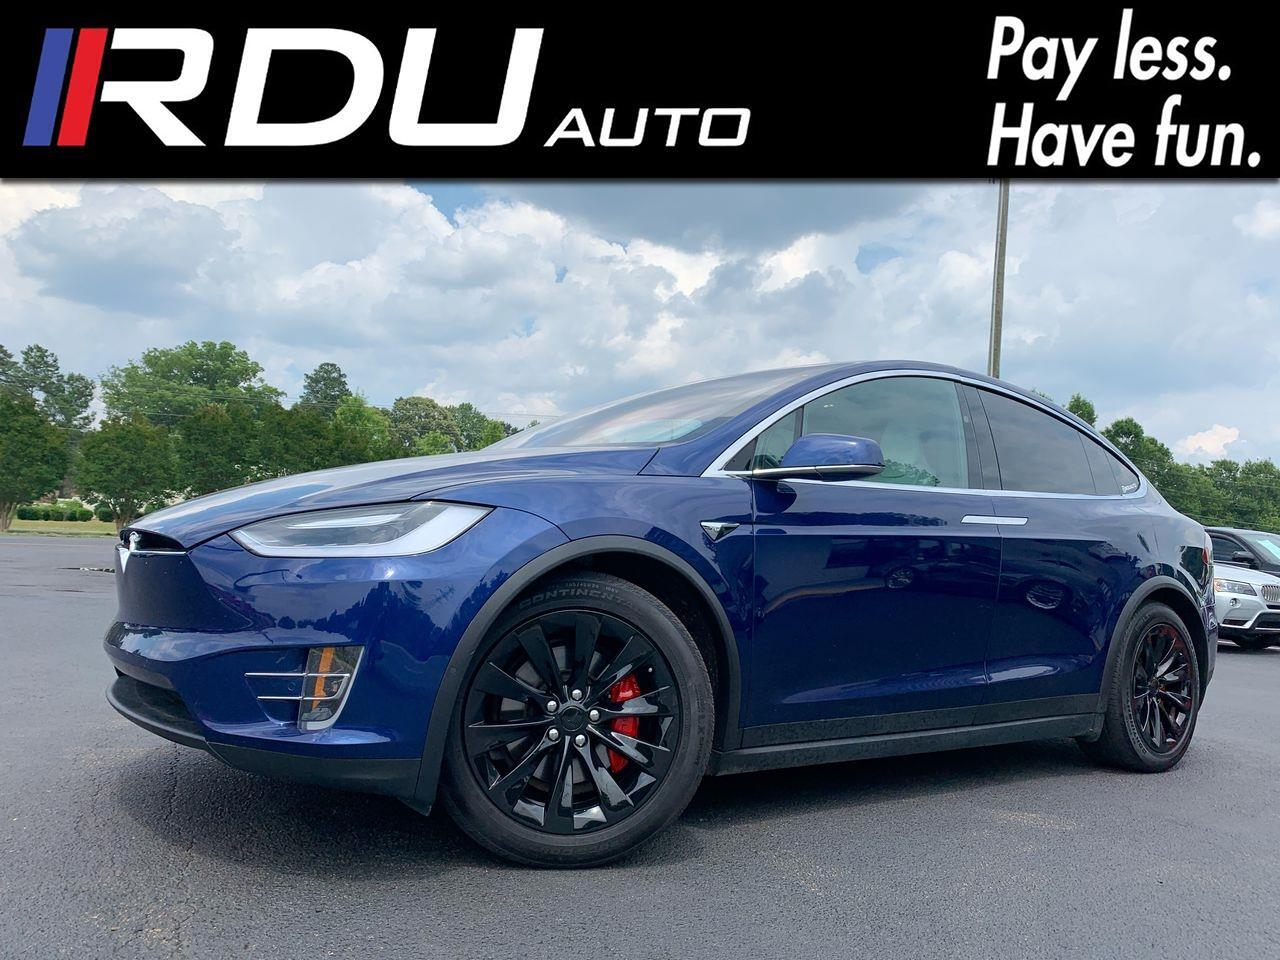 2017 Tesla Model X 100D AWD Full Self Drive Auto Pilot 2